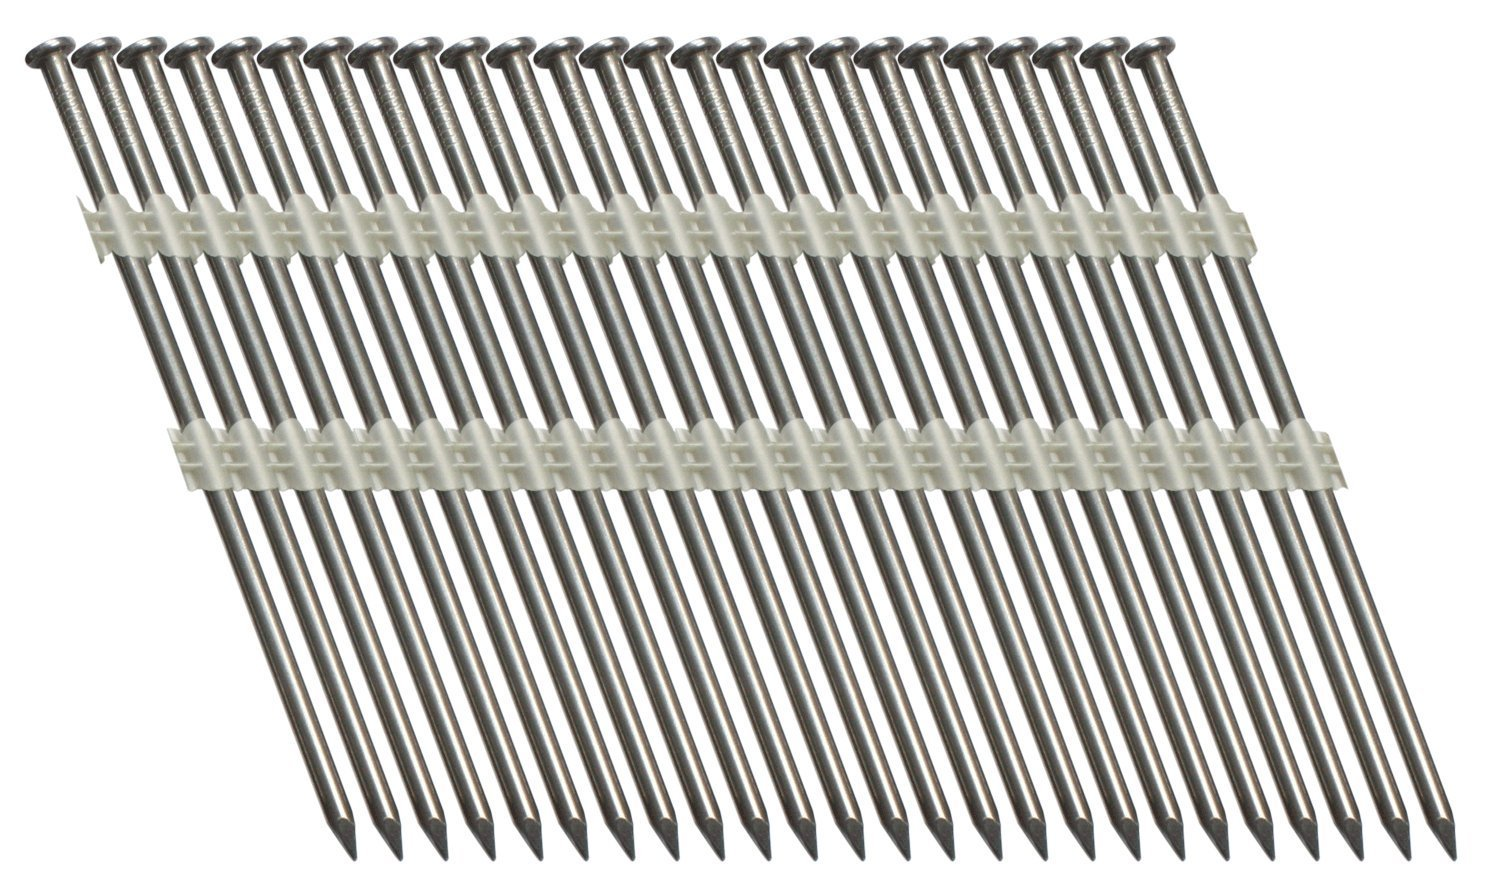 Fasco FP304820E 4-1/2-Inch by .148-Inch Smooth Non-Galvanized Jumbo Nails for Fasco and Bostitch BigBerta Nailers, 1250-Piece